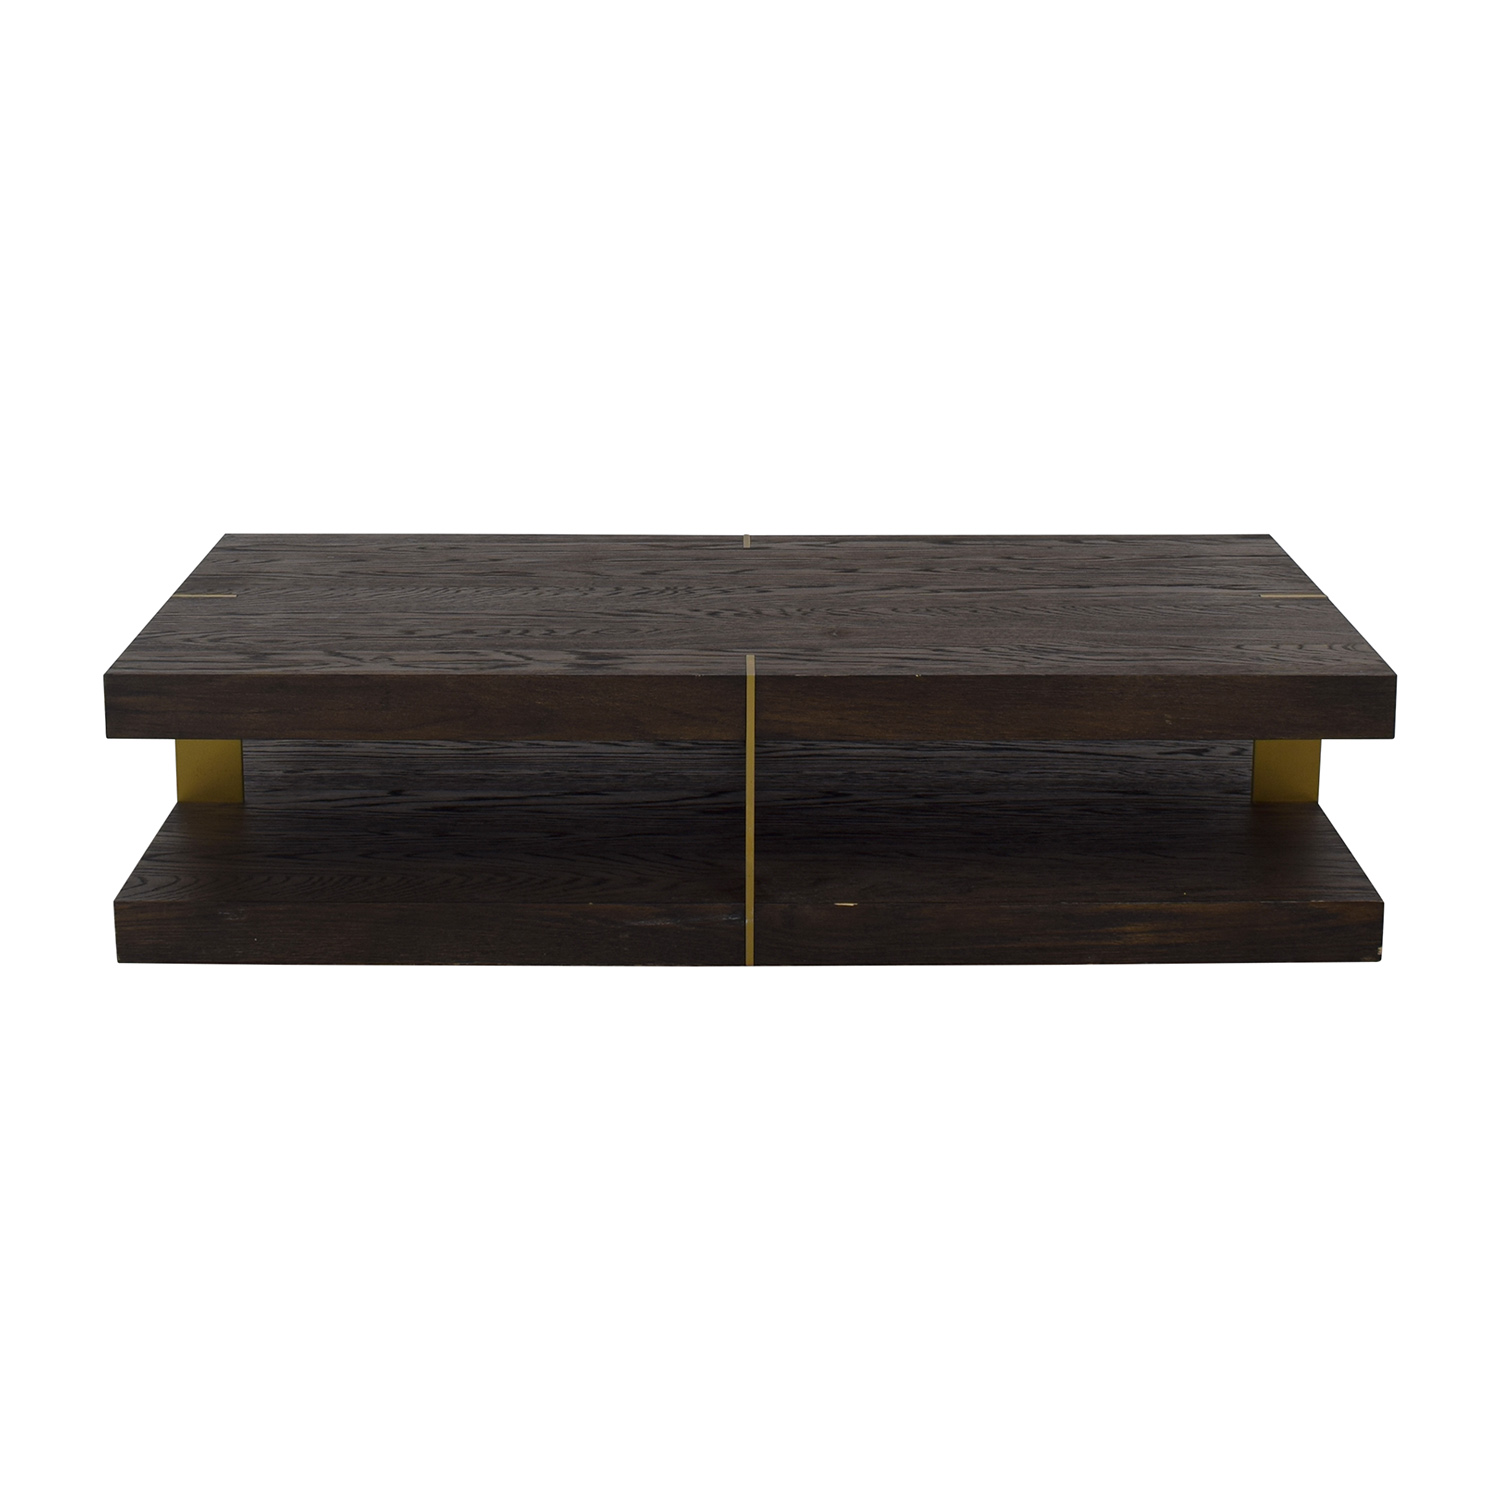 Restoration Hardware Restoration Hardware Verrazano Rectangular Coffee Table Tables